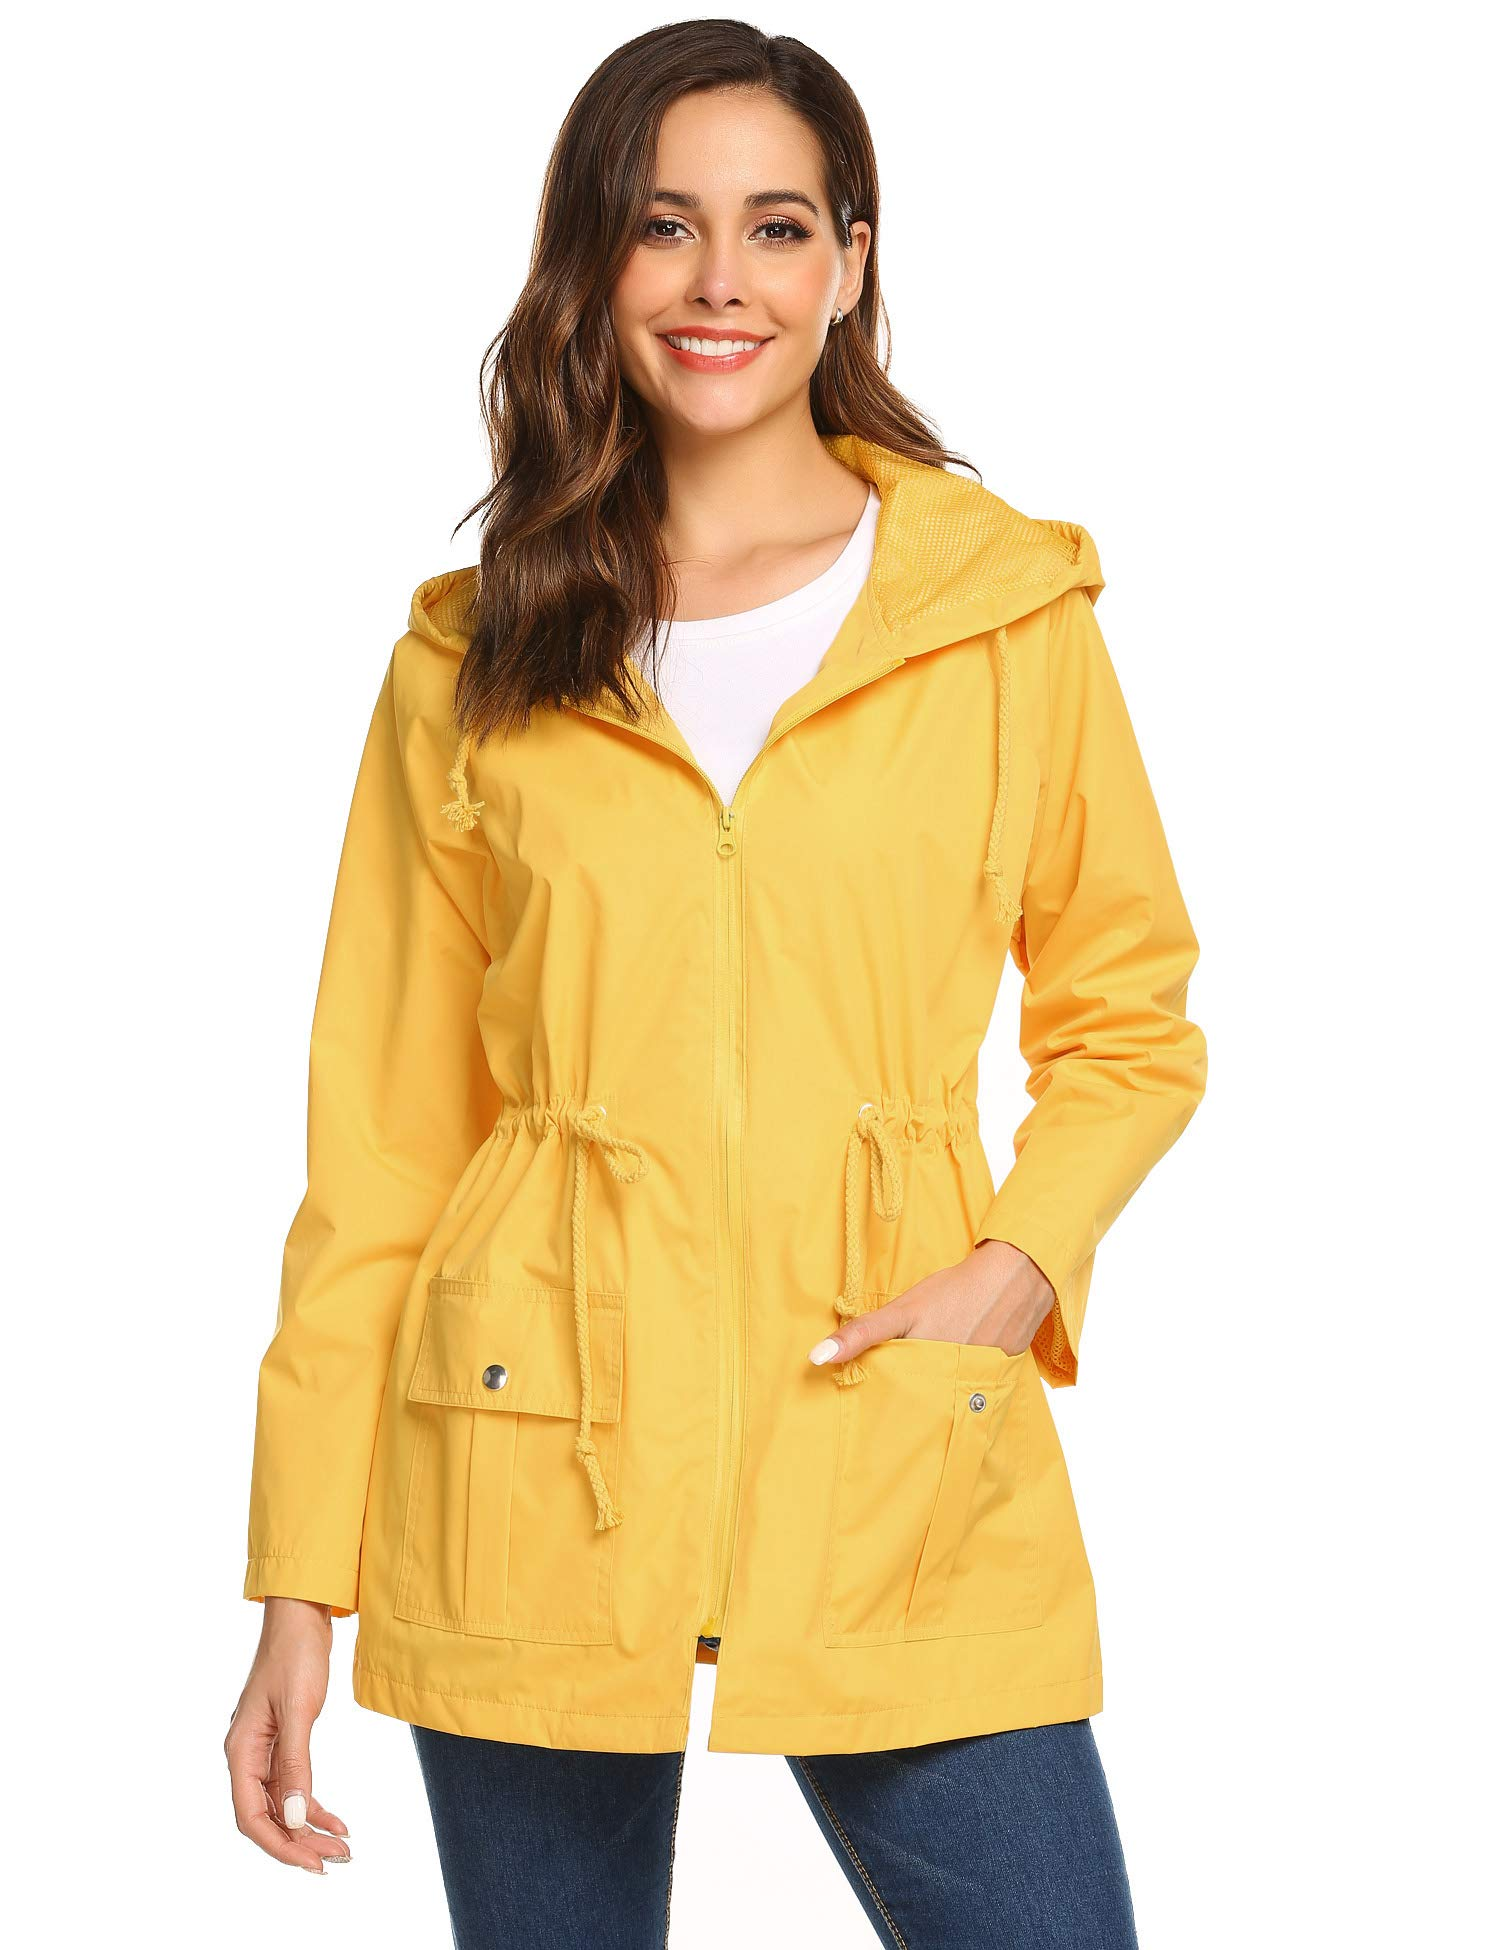 BEAUTEINE Womens  Waterproof Raincoat Lightweight Rainjacket Outwear Hooded  Running Windbreaker product image fbd69faac